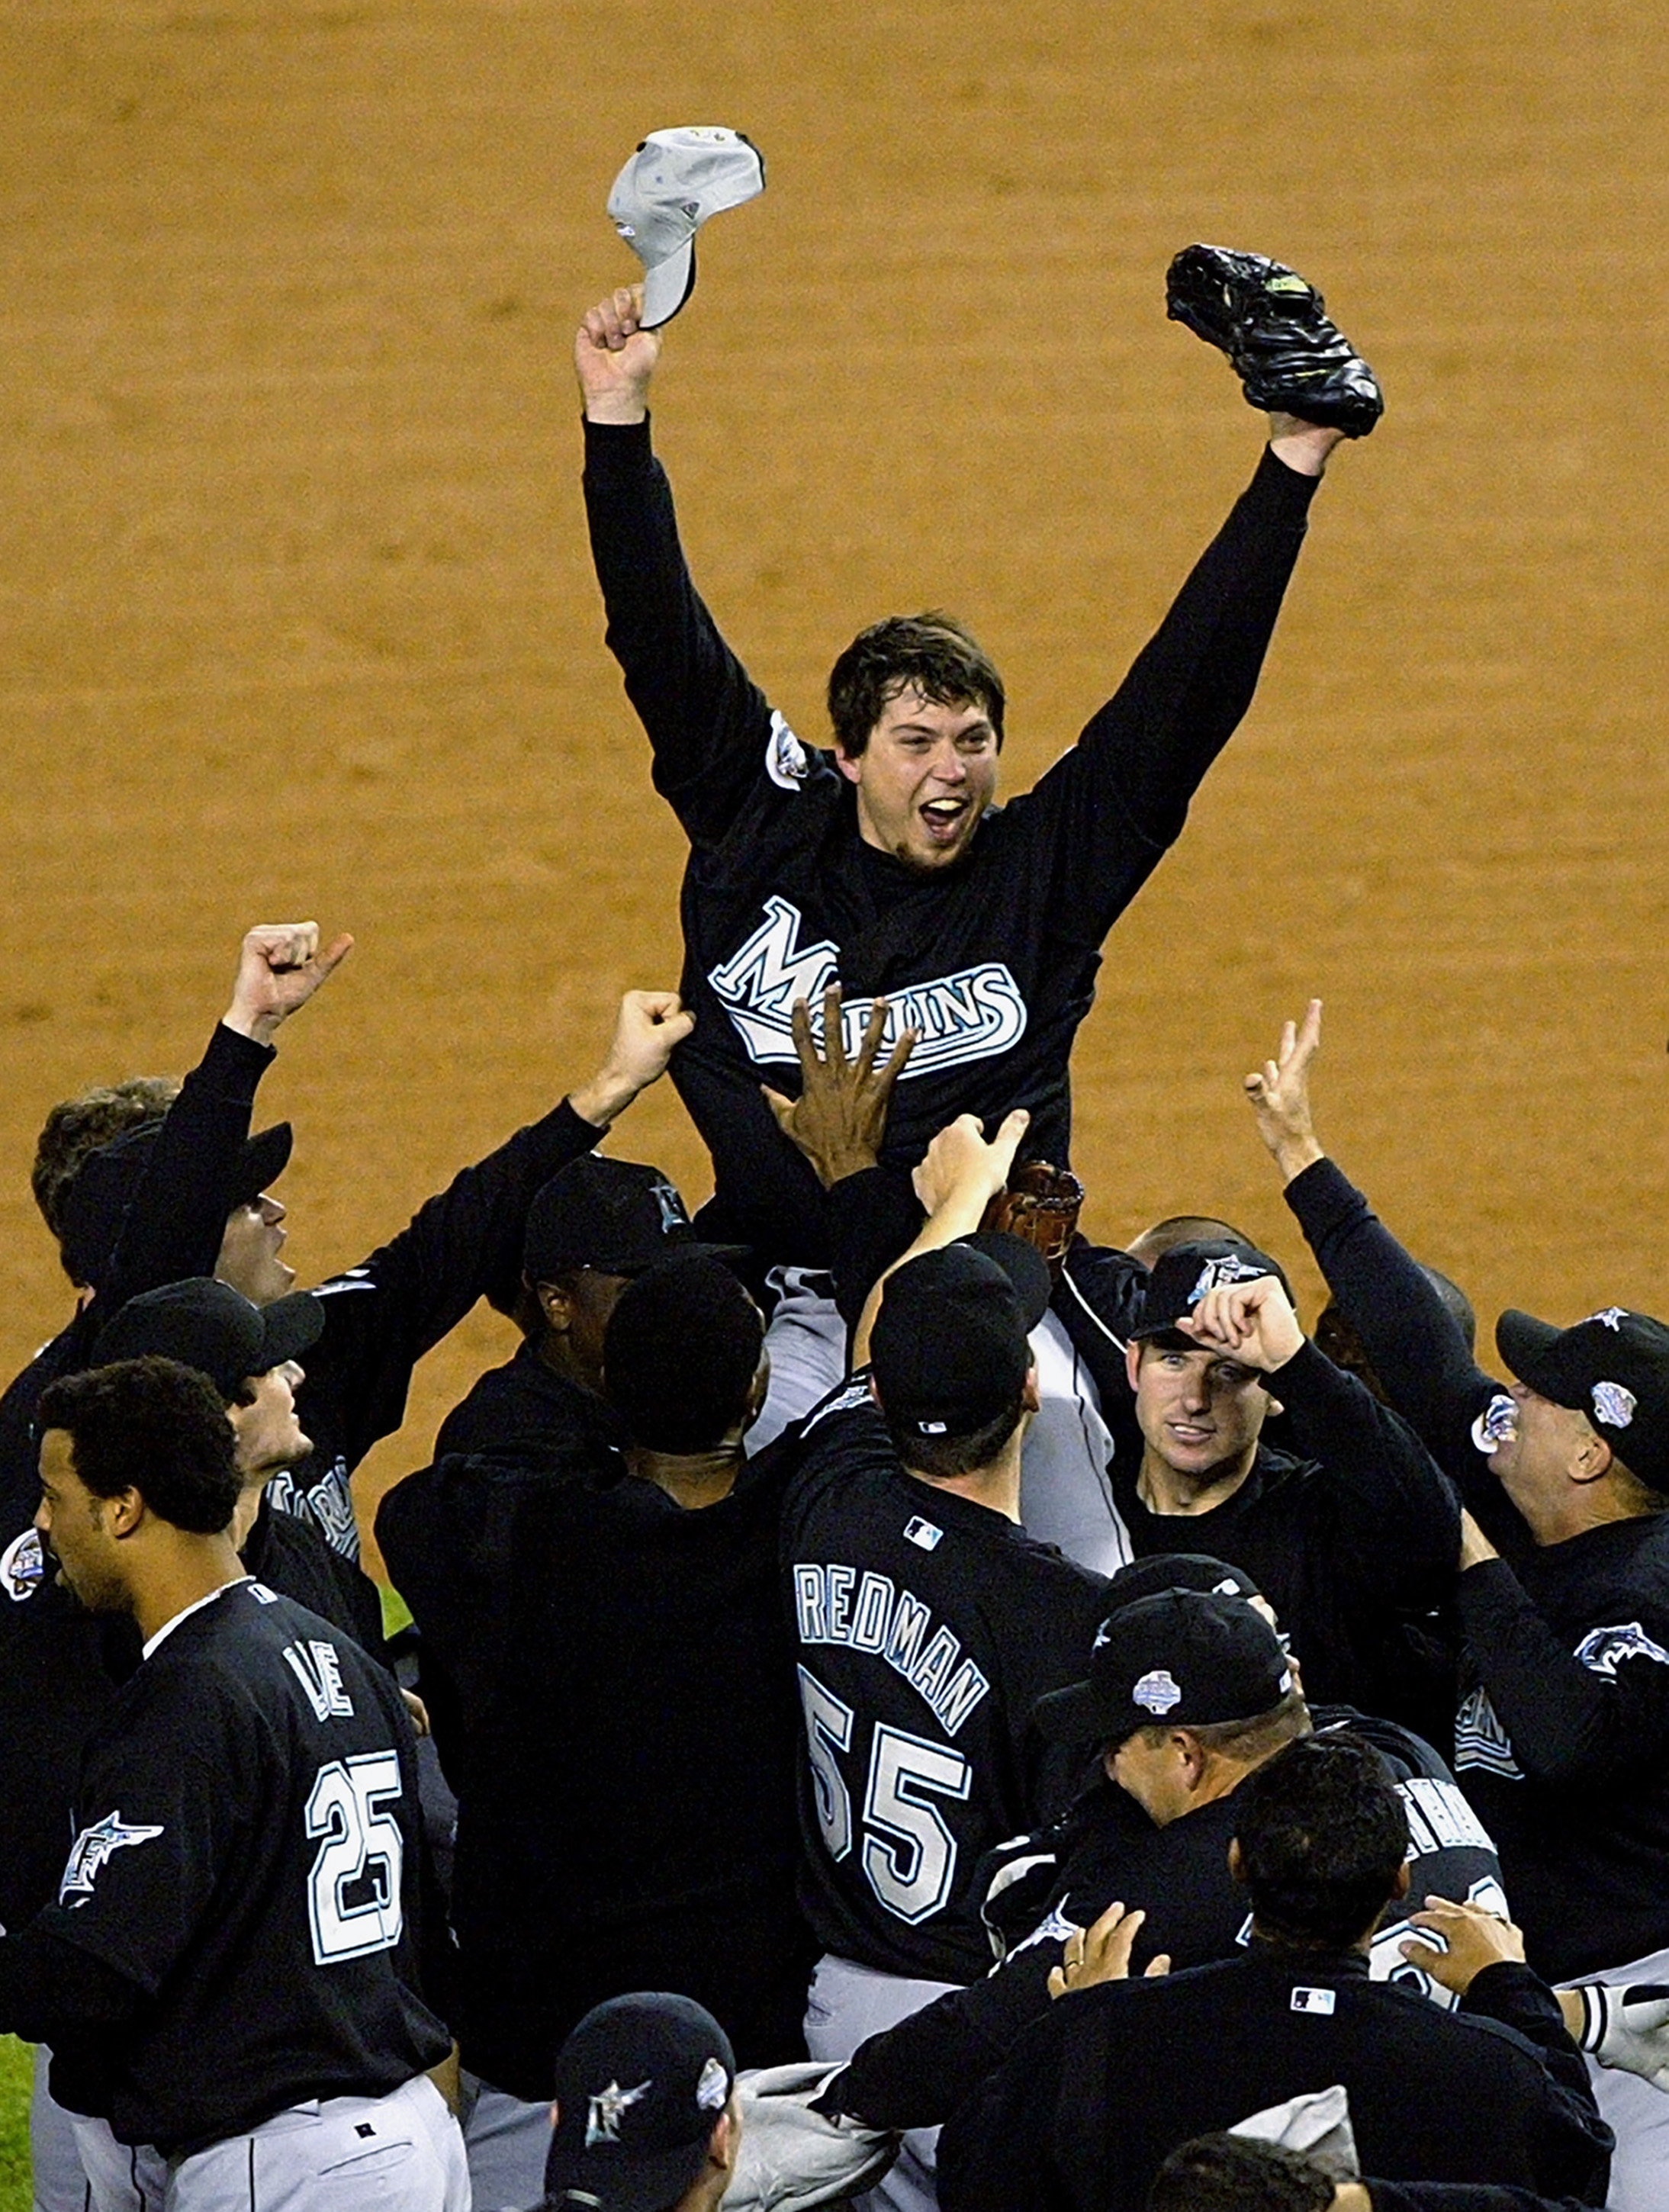 RONX, NY - OCTOBER 25:  The Florida Marlins hoist up pitcher Josh Beckett #21 the 2003 World Series MVP after defeating the New York Yankees 2-0 in game six of the Major League Baseball World Series on October 25, 2003 at Yankee Stadium in the Bronx, New